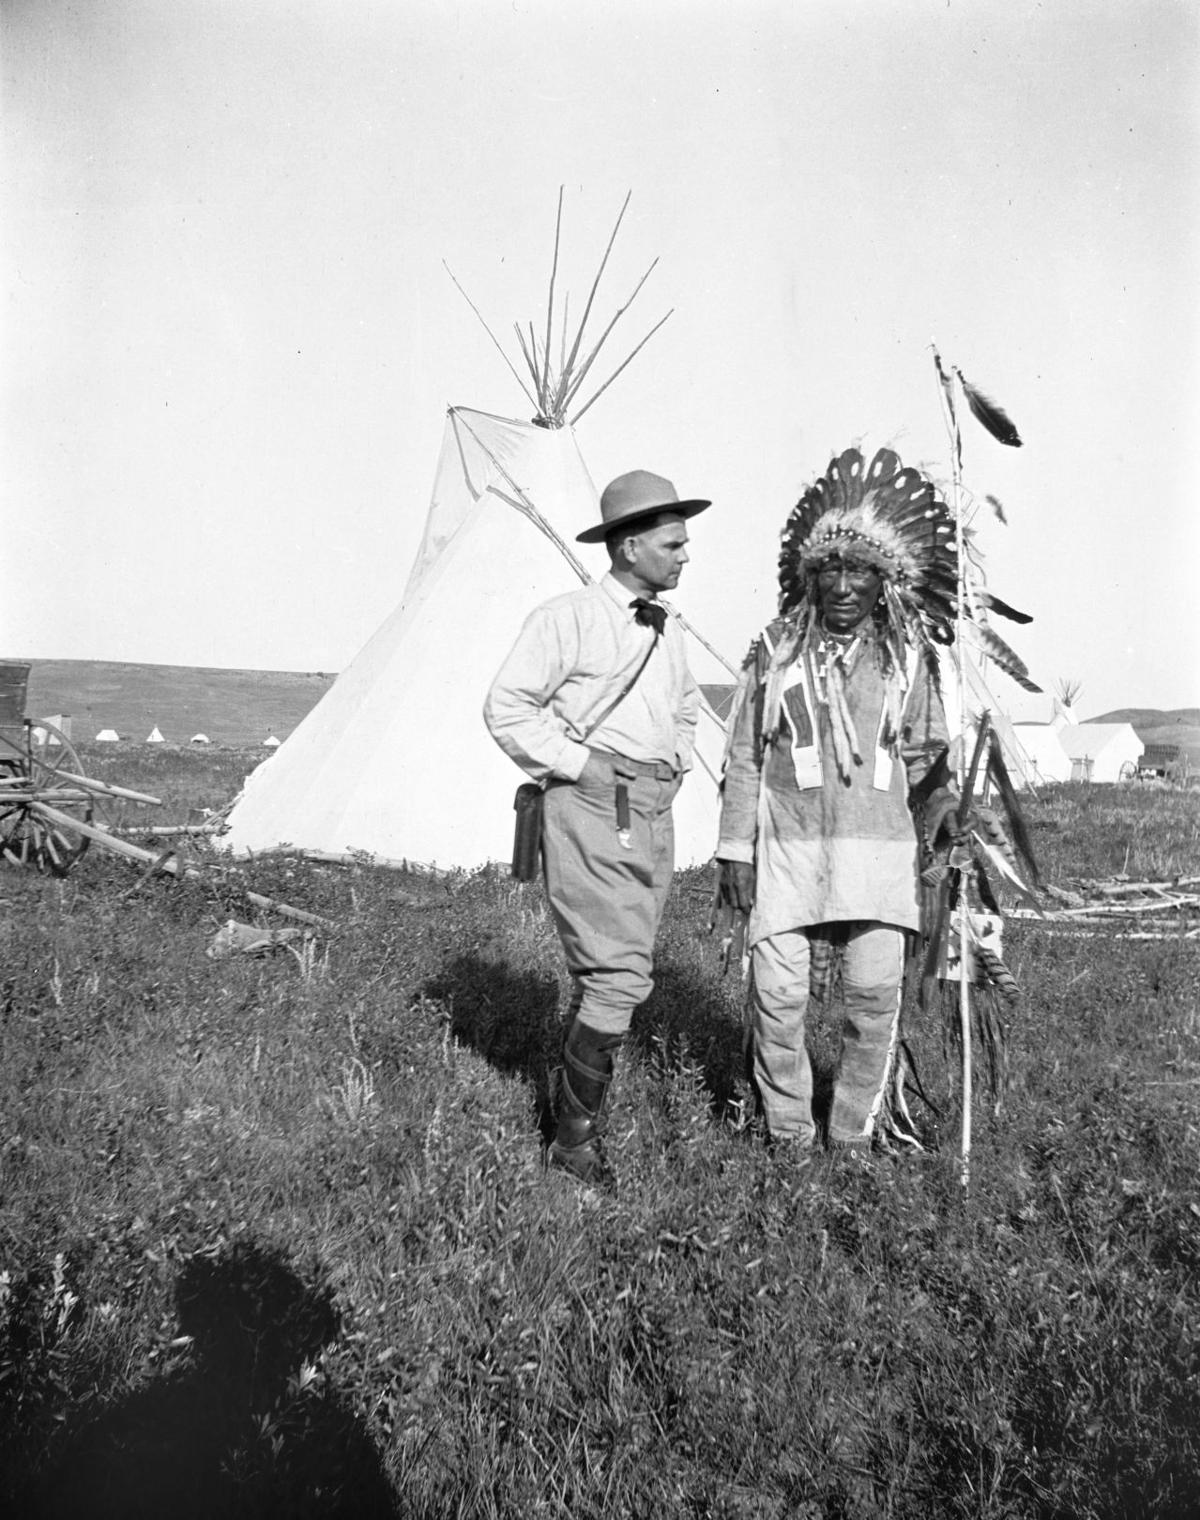 Joe Scheurele with Native American man